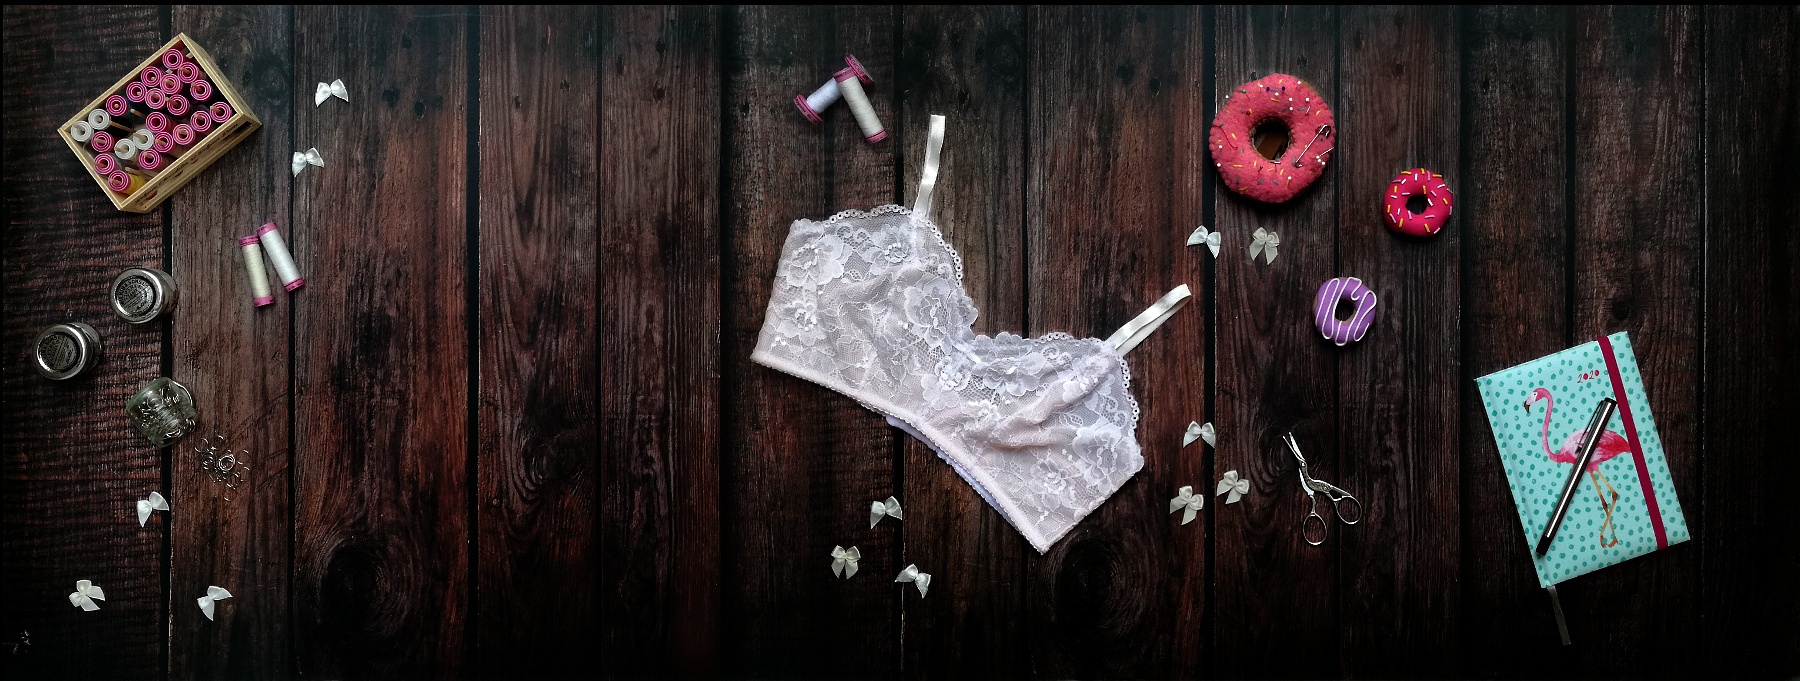 Sewing-a-bralette-layout